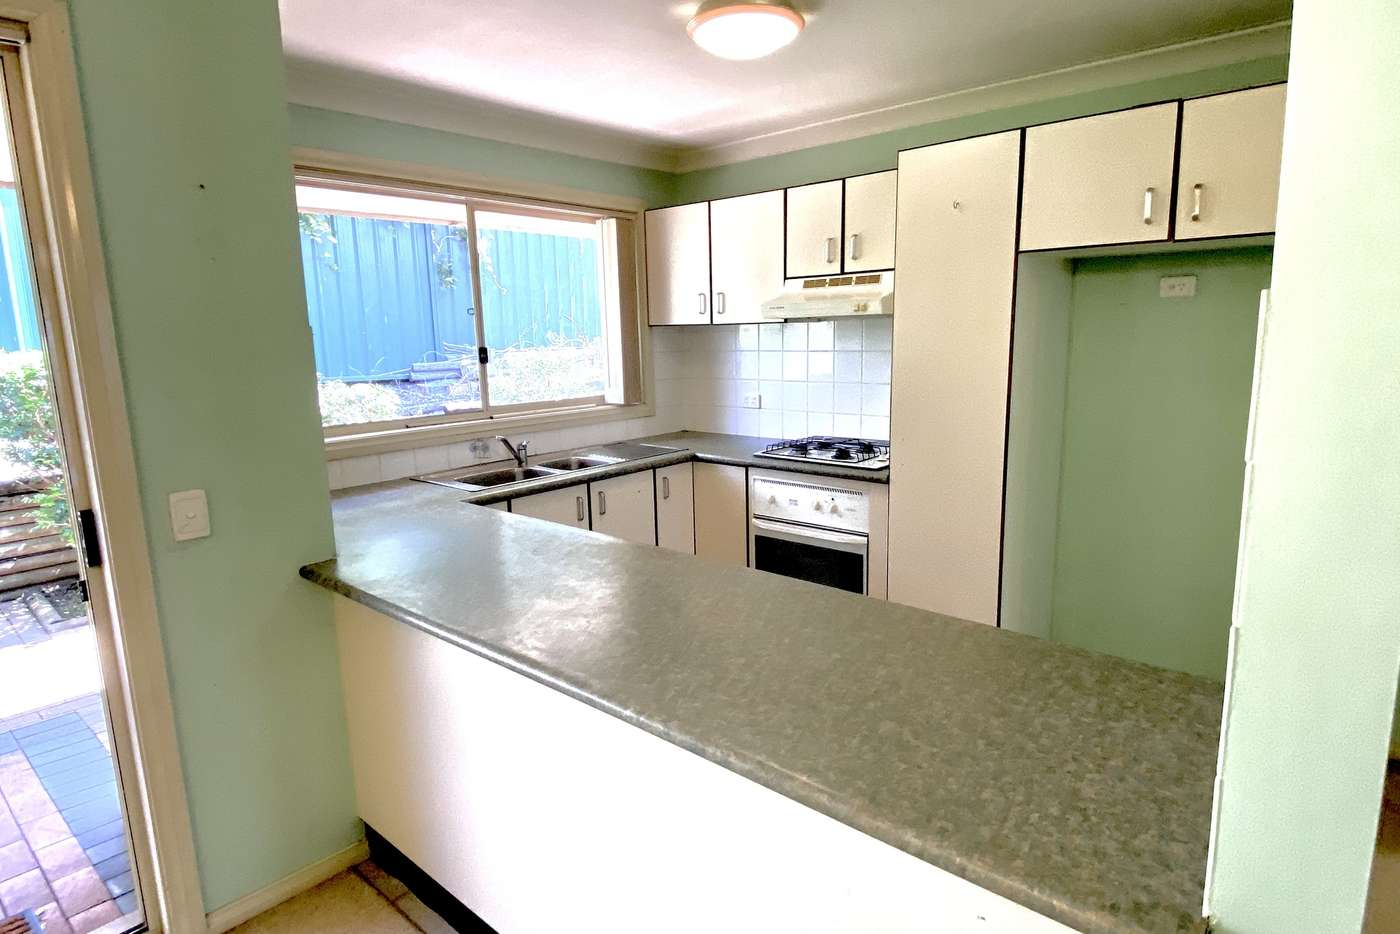 Sixth view of Homely villa listing, 10/6 Binalong Road, Pendle Hill NSW 2145